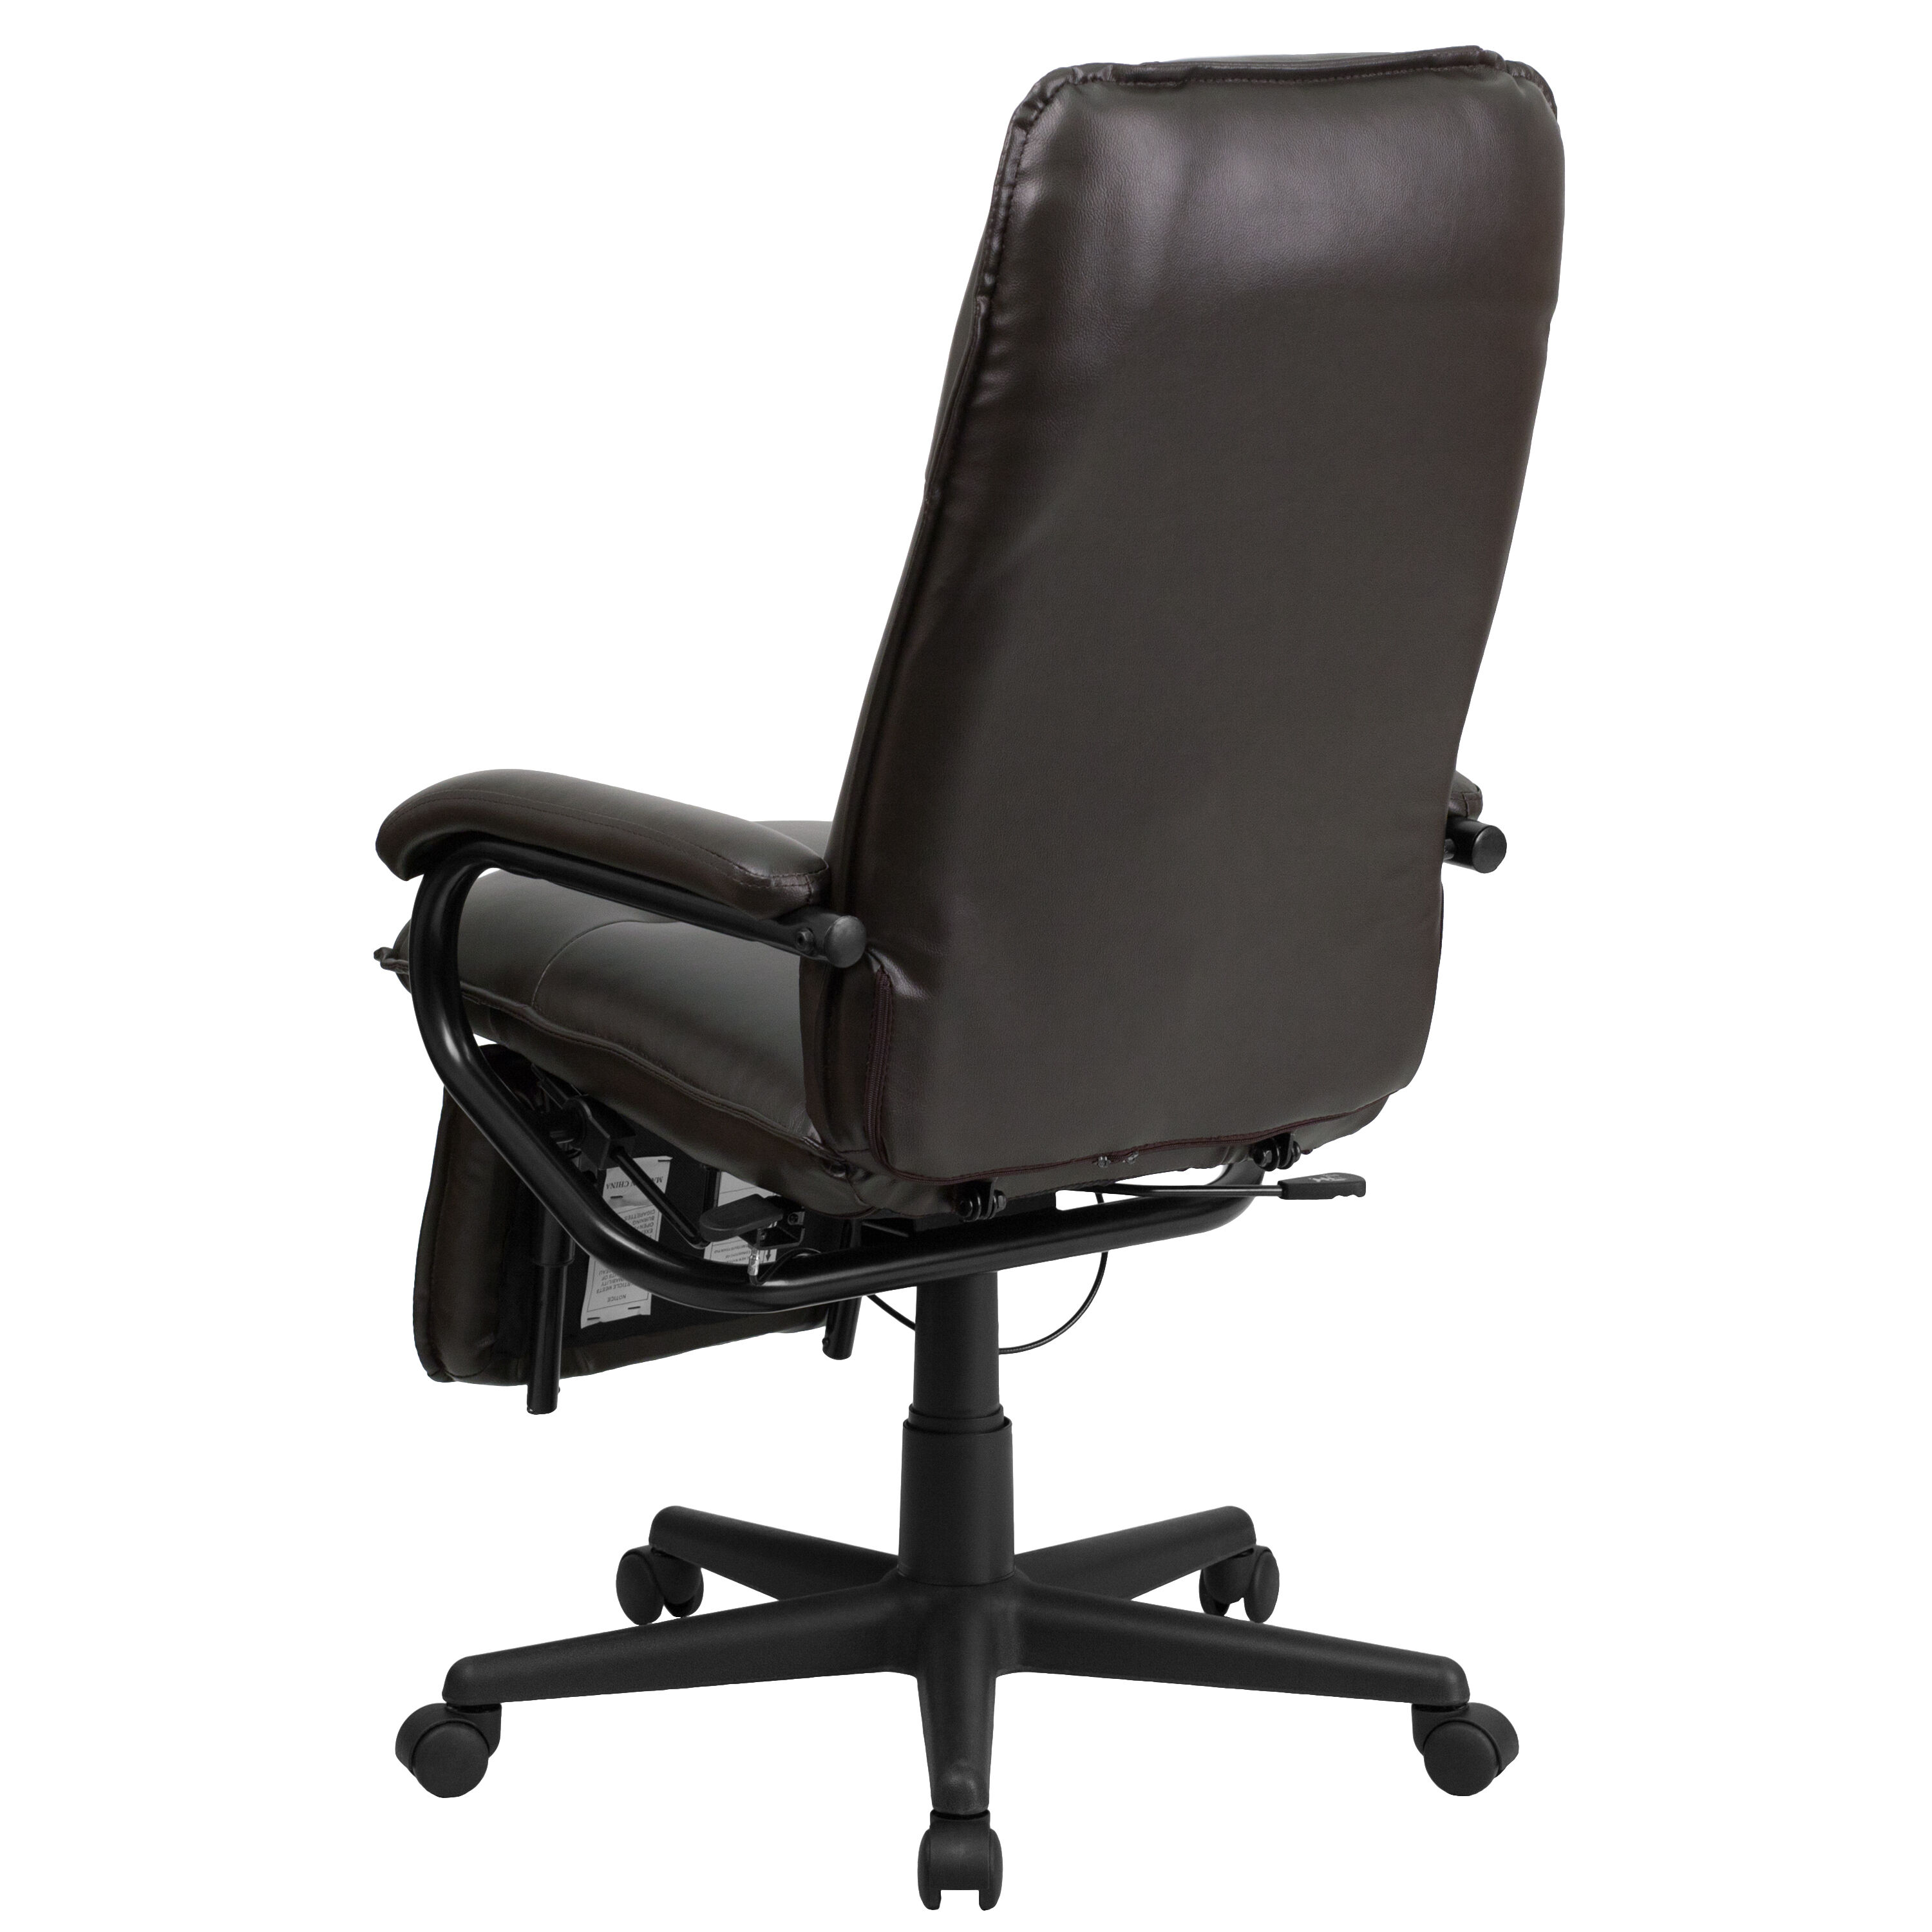 office chair on sale steel making machine brown reclining leather bt 70172 bn gg bizchair com our high back executive ergonomic swivel with arms is